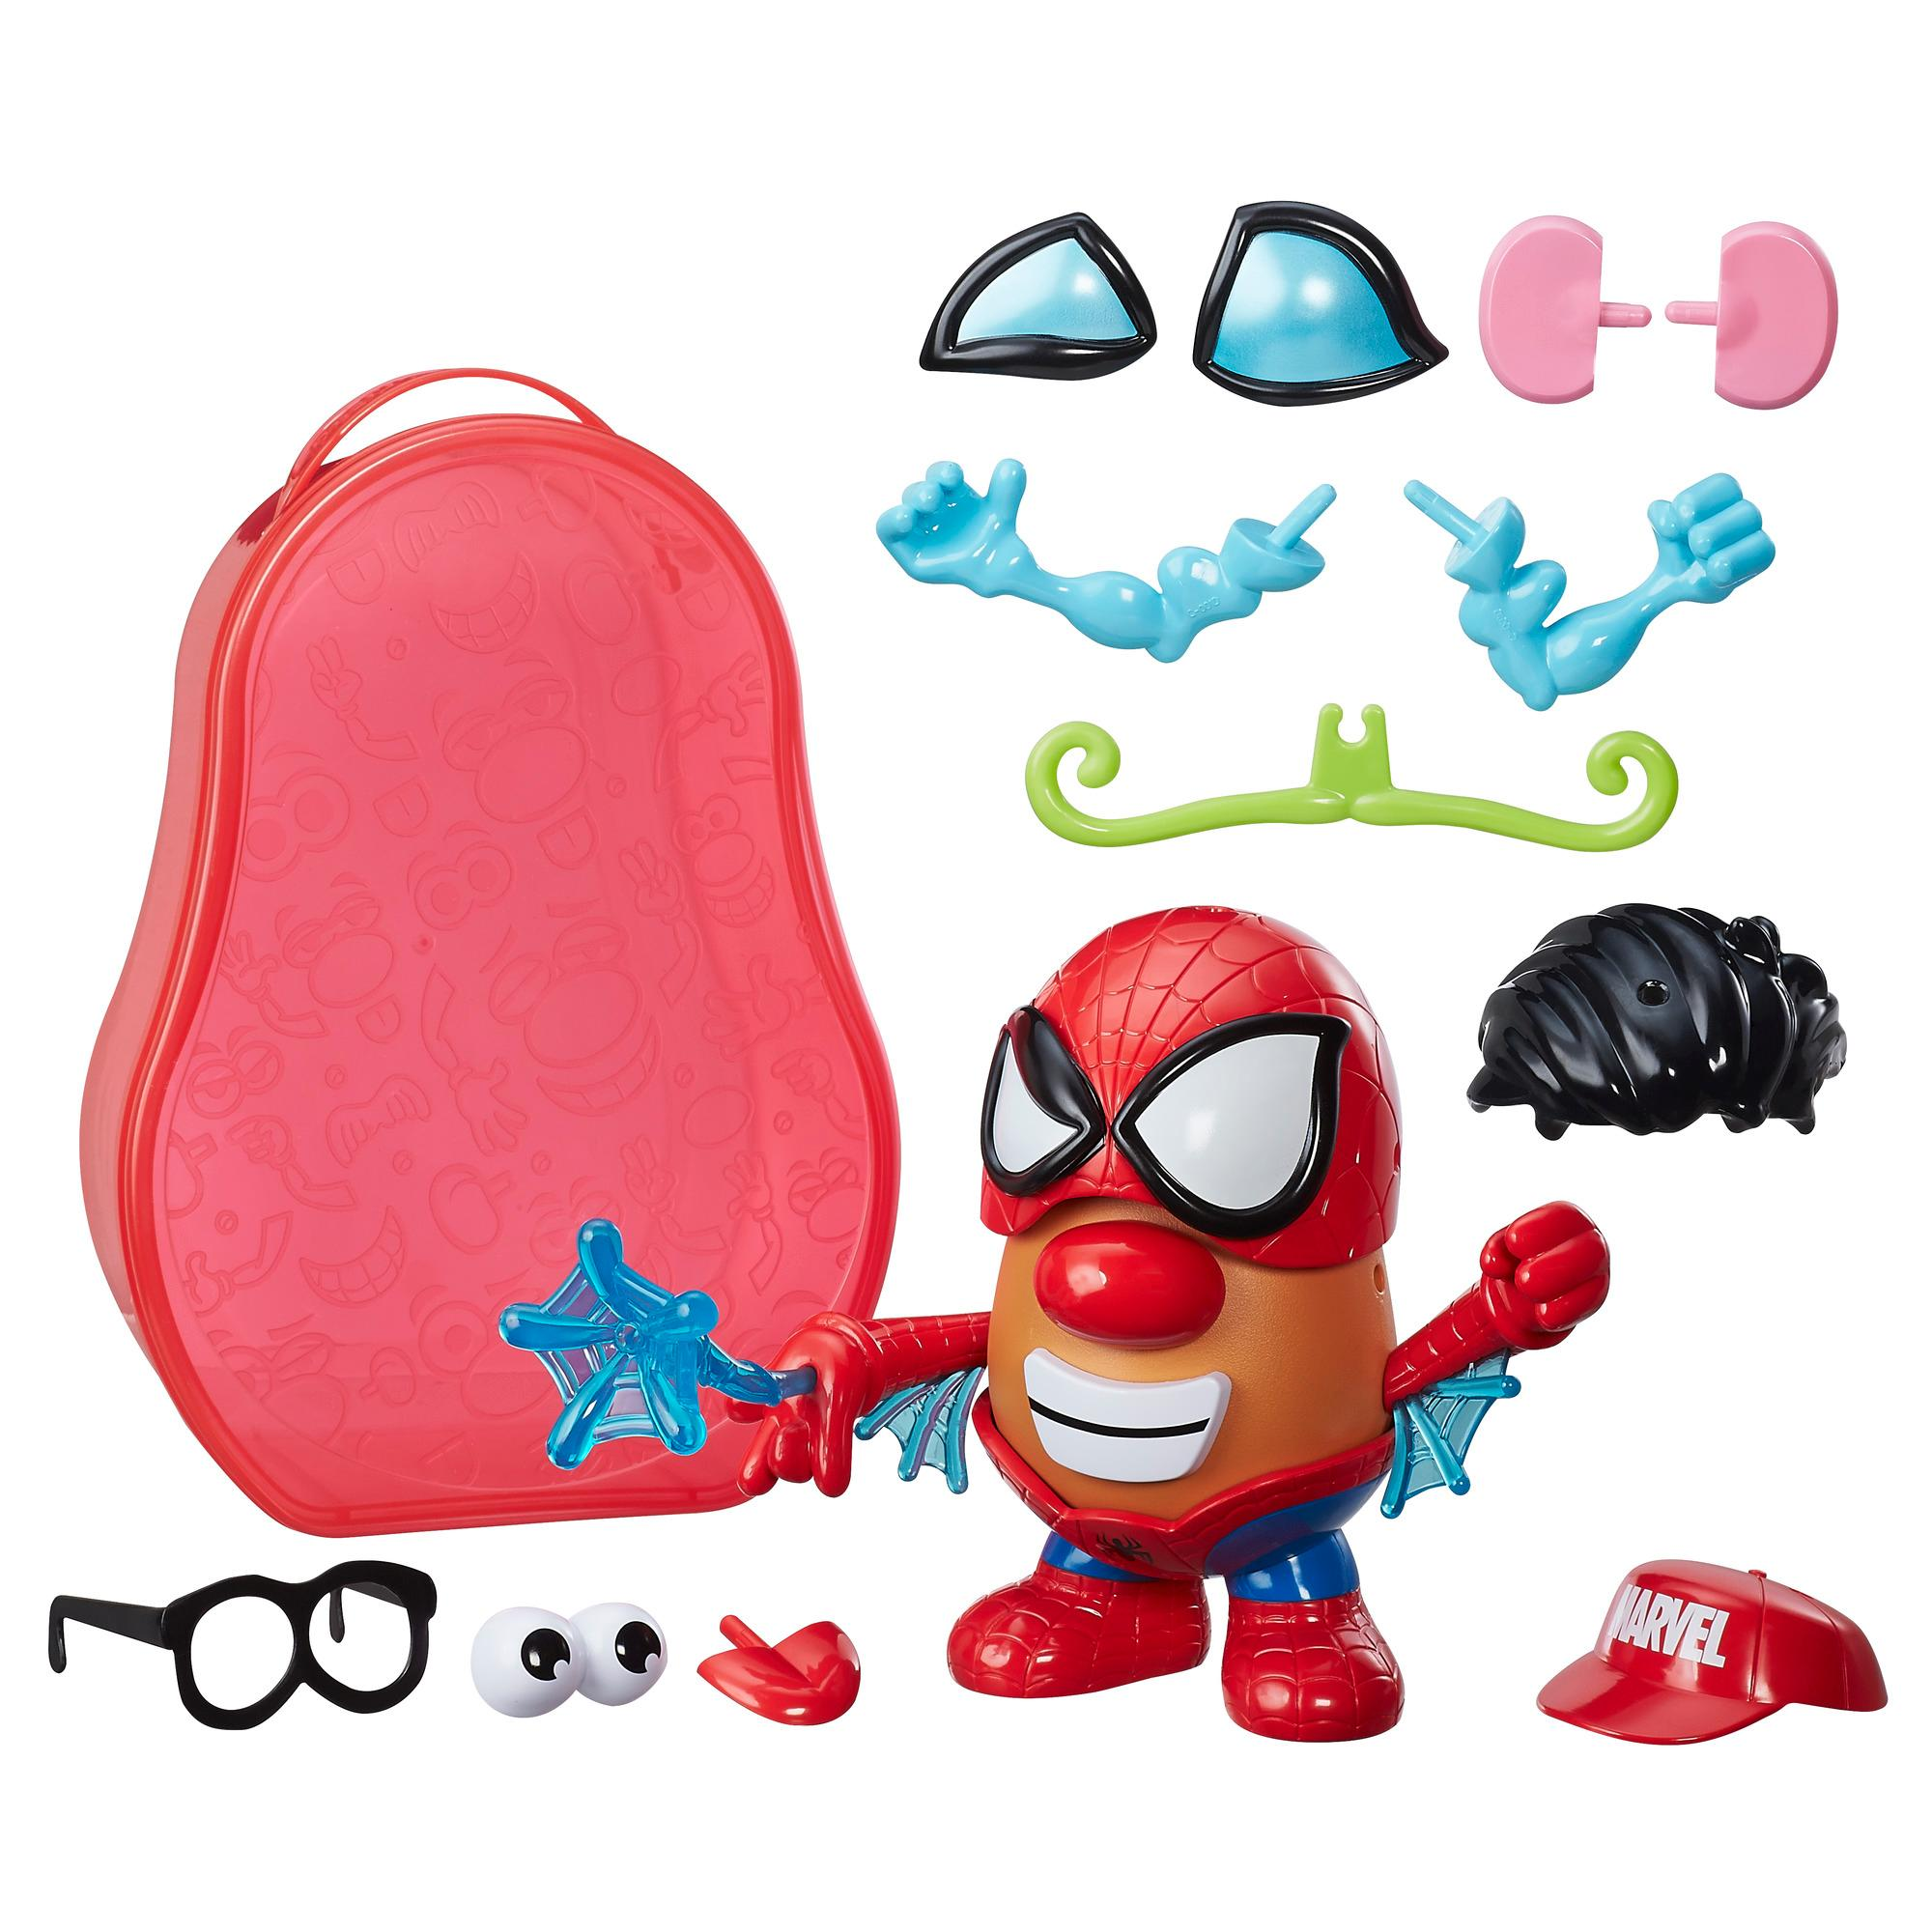 Playskool Friends Mr. Potato Head Marvel - Maleta Papa Araña